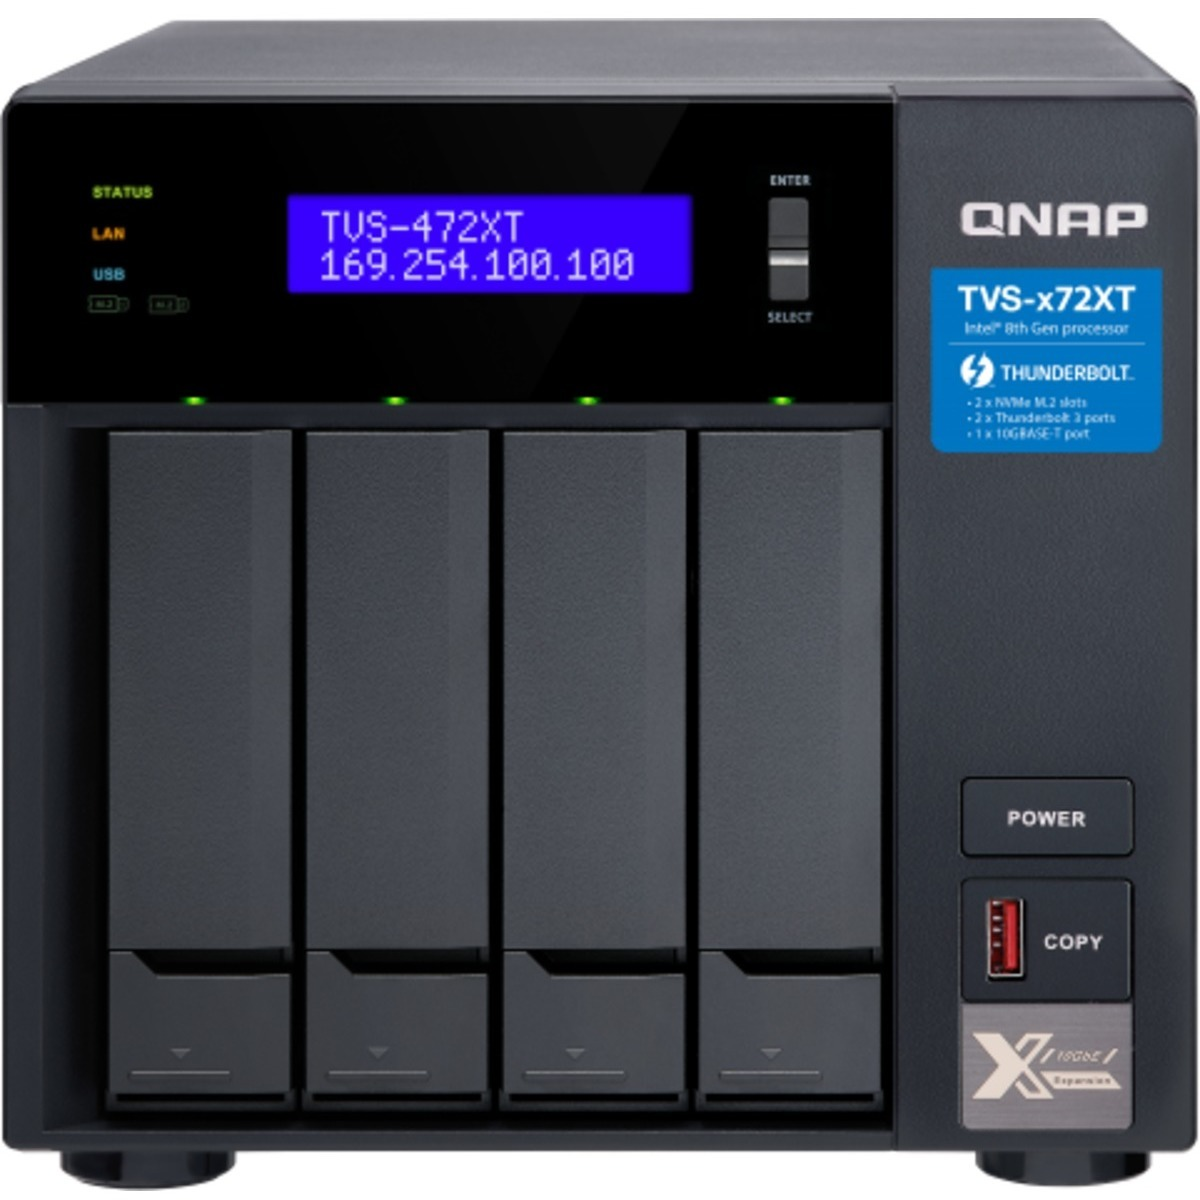 buy $1662 QNAP TVS-472XT Thunderbolt 3 12tb Desktop DAS-NAS - Combo Direct + Network Storage Device 4x3000gb Hitachi HGST Ultrastar 7K4000 HUS724030ALE640 3.5 7200rpm SATA 6Gb/s HDD ENTERPRISE Class Drives Installed - Burn-In Tested - nas headquarters buy network attached storage server device das new sale raid-5 free shipping usa TVS-472XT Thunderbolt 3